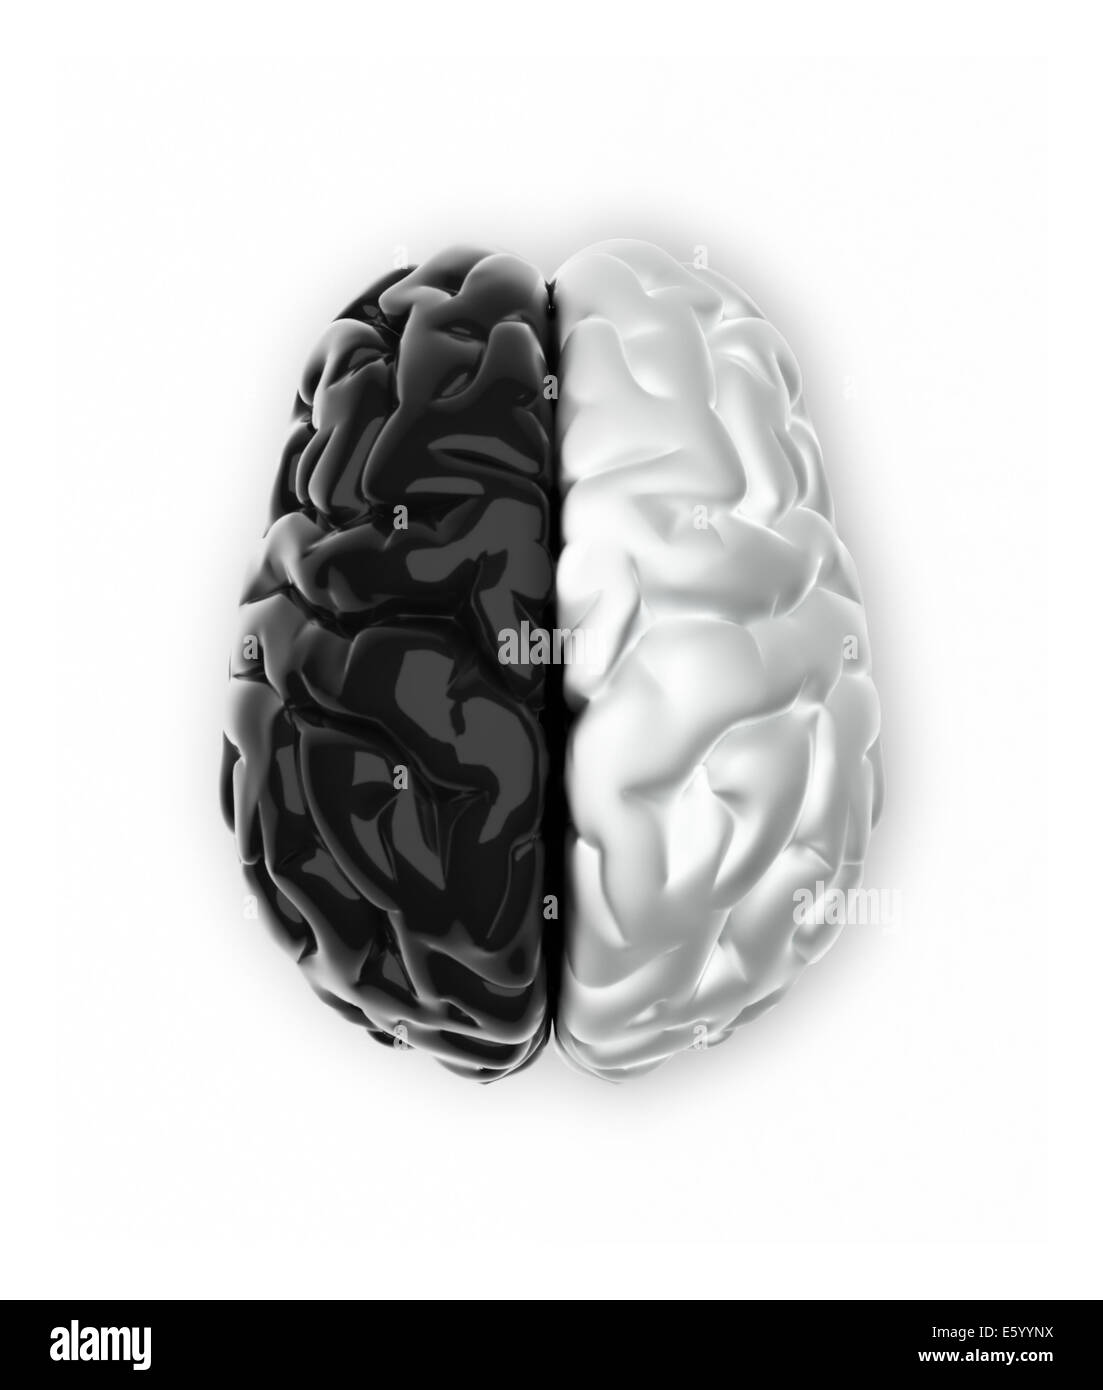 Brain in black and white like Yin and Yang - 3d render - Stock Image